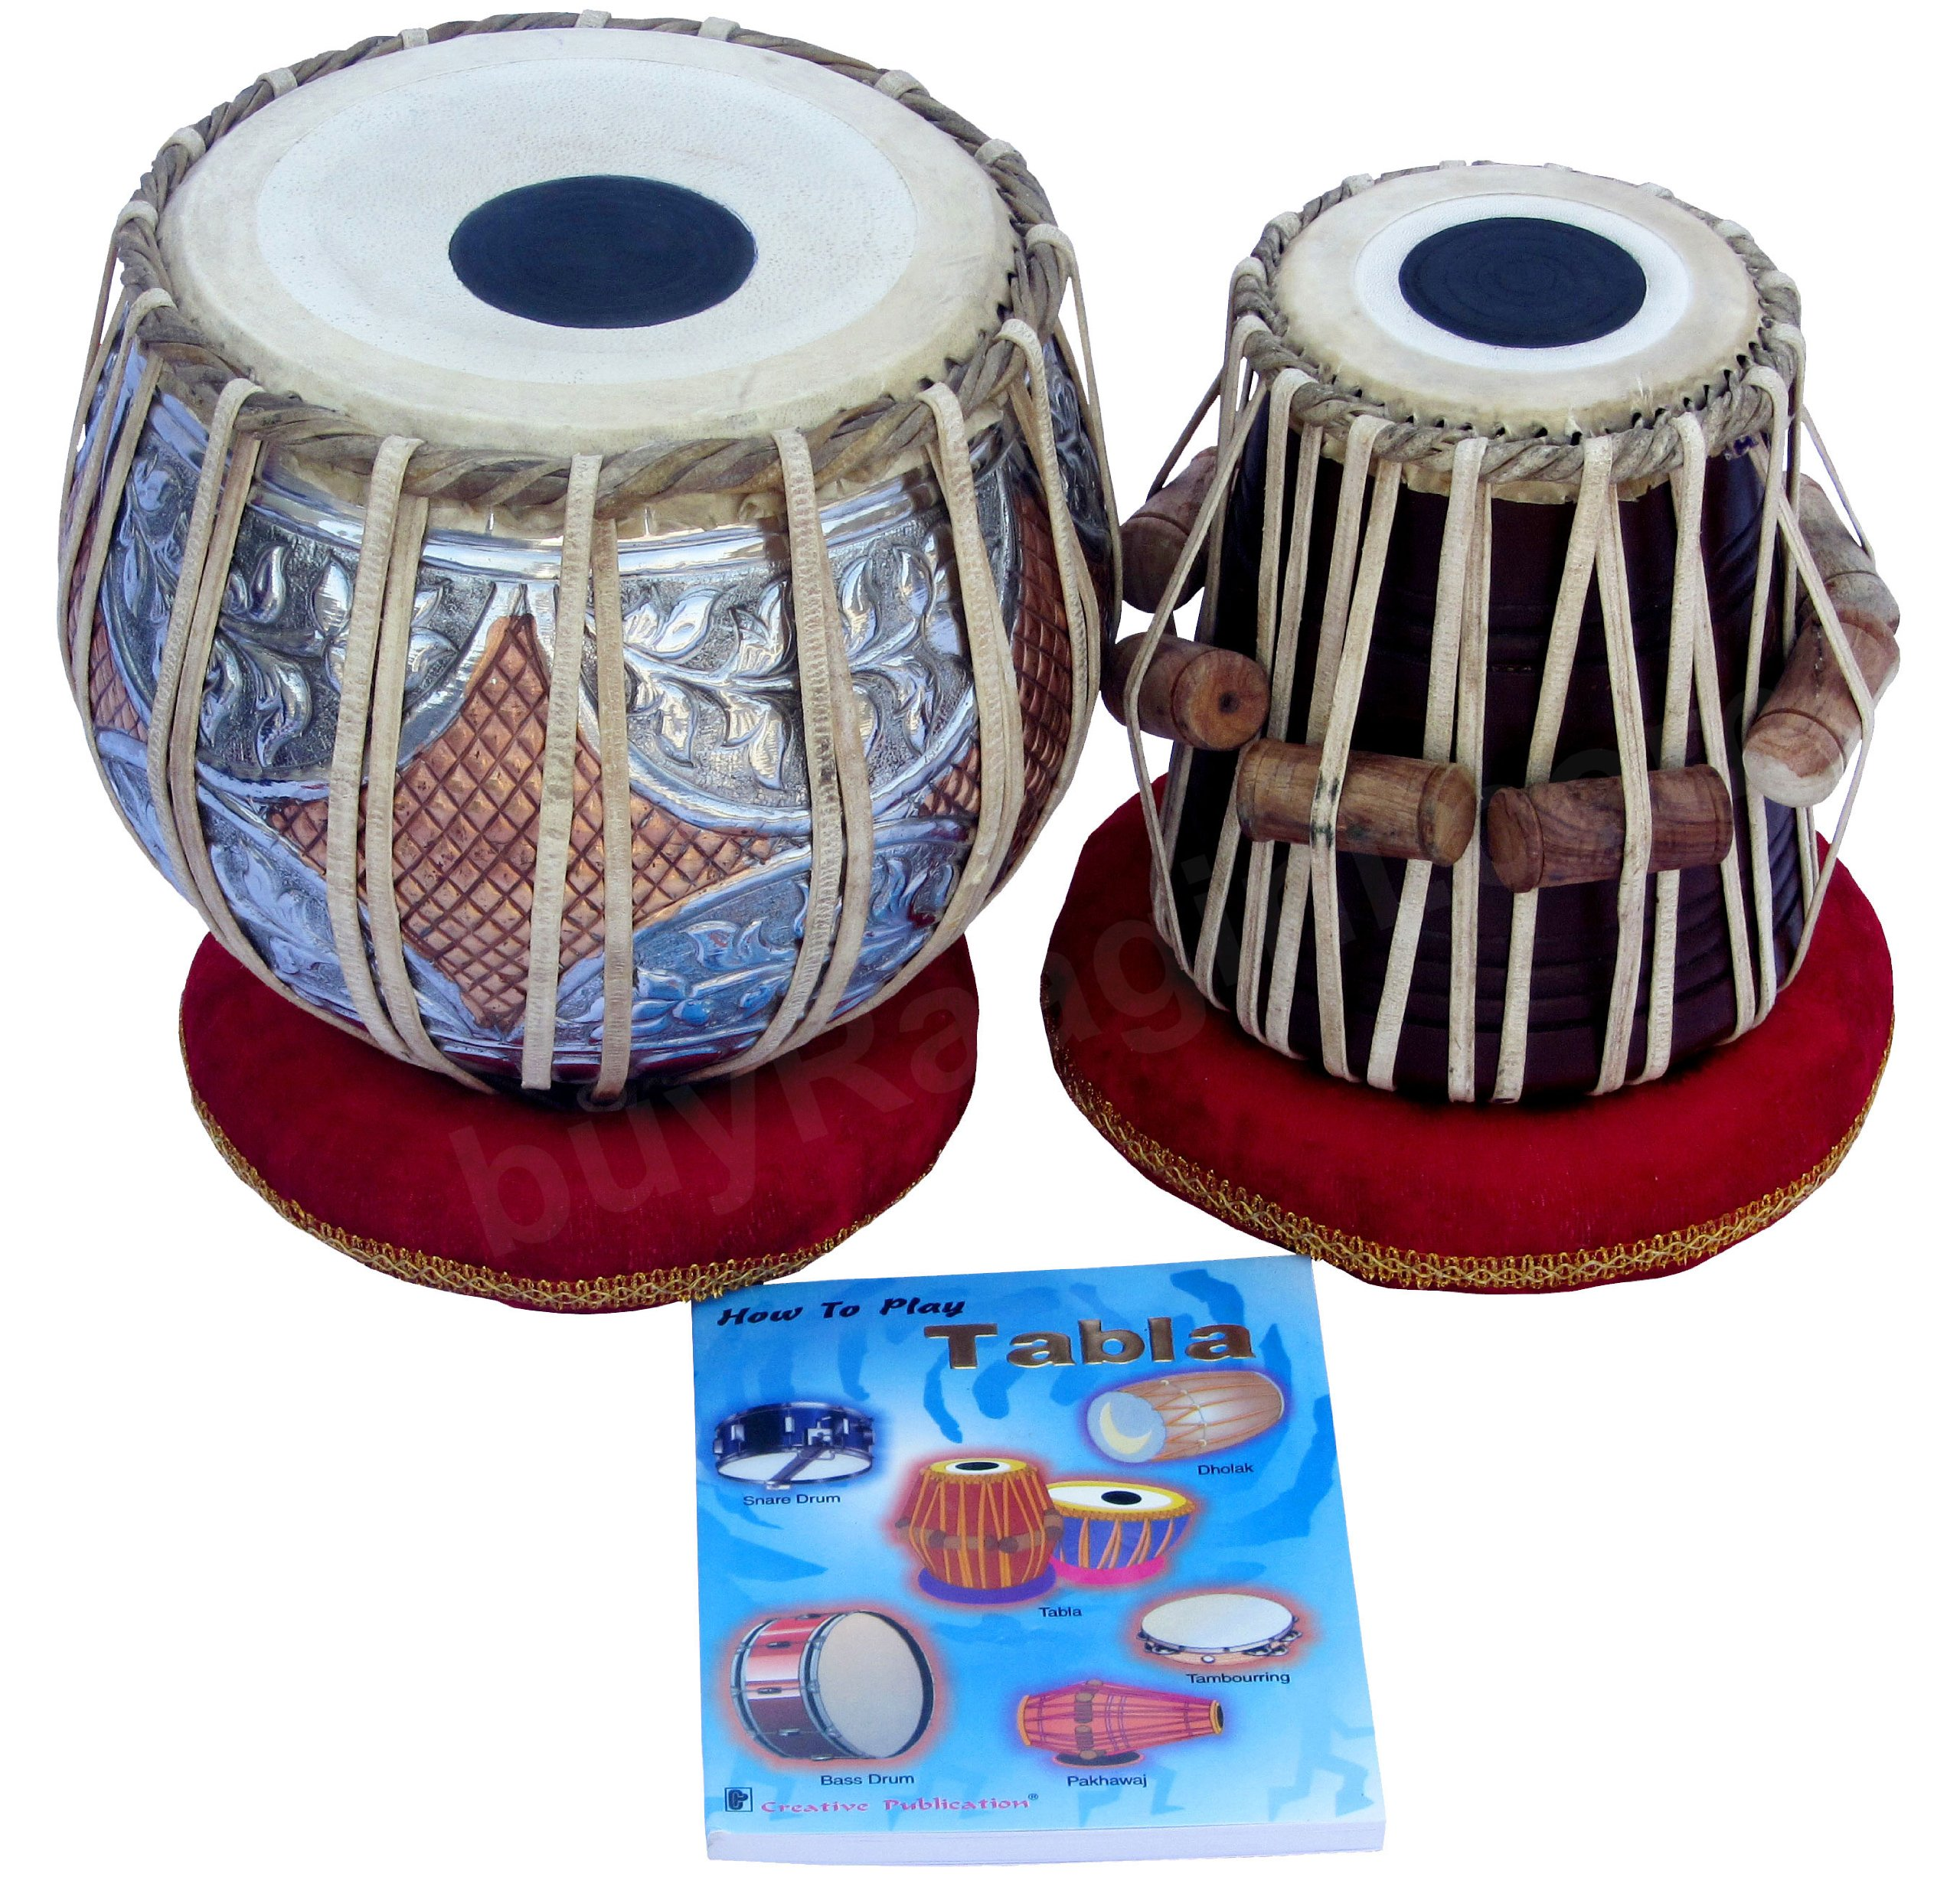 Maharaja Musicals Tabla Drum Set, Concert Quality, 4.5Kg Copper Bayan - Double Color, Sheesham Dayan Tuneable To C#, Padded Bag, Book, Hammer, Cushions & Cover, Indian Hand Drums (PDI-GJ) by Maharaja Musicals